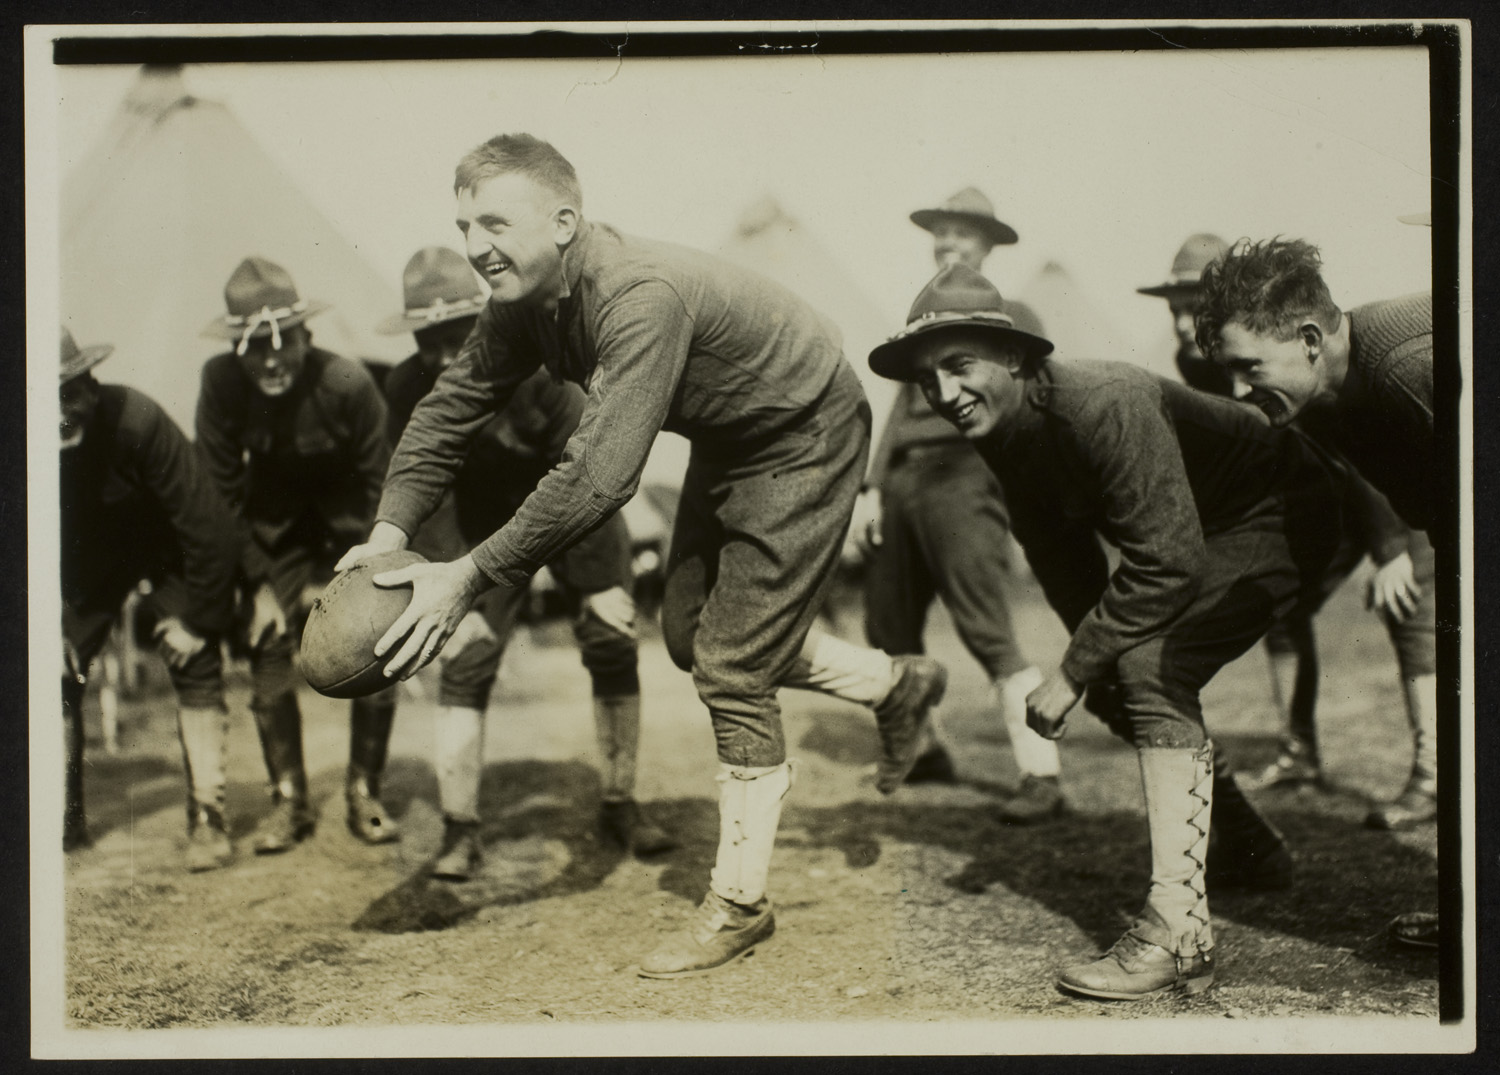 Soldiers playing football, Army training camp, 1917                                                                     George Eastman House Collection, Transfer from Photo League Lewis Hine Memorial Committee, ex-collection of Corydon Hine